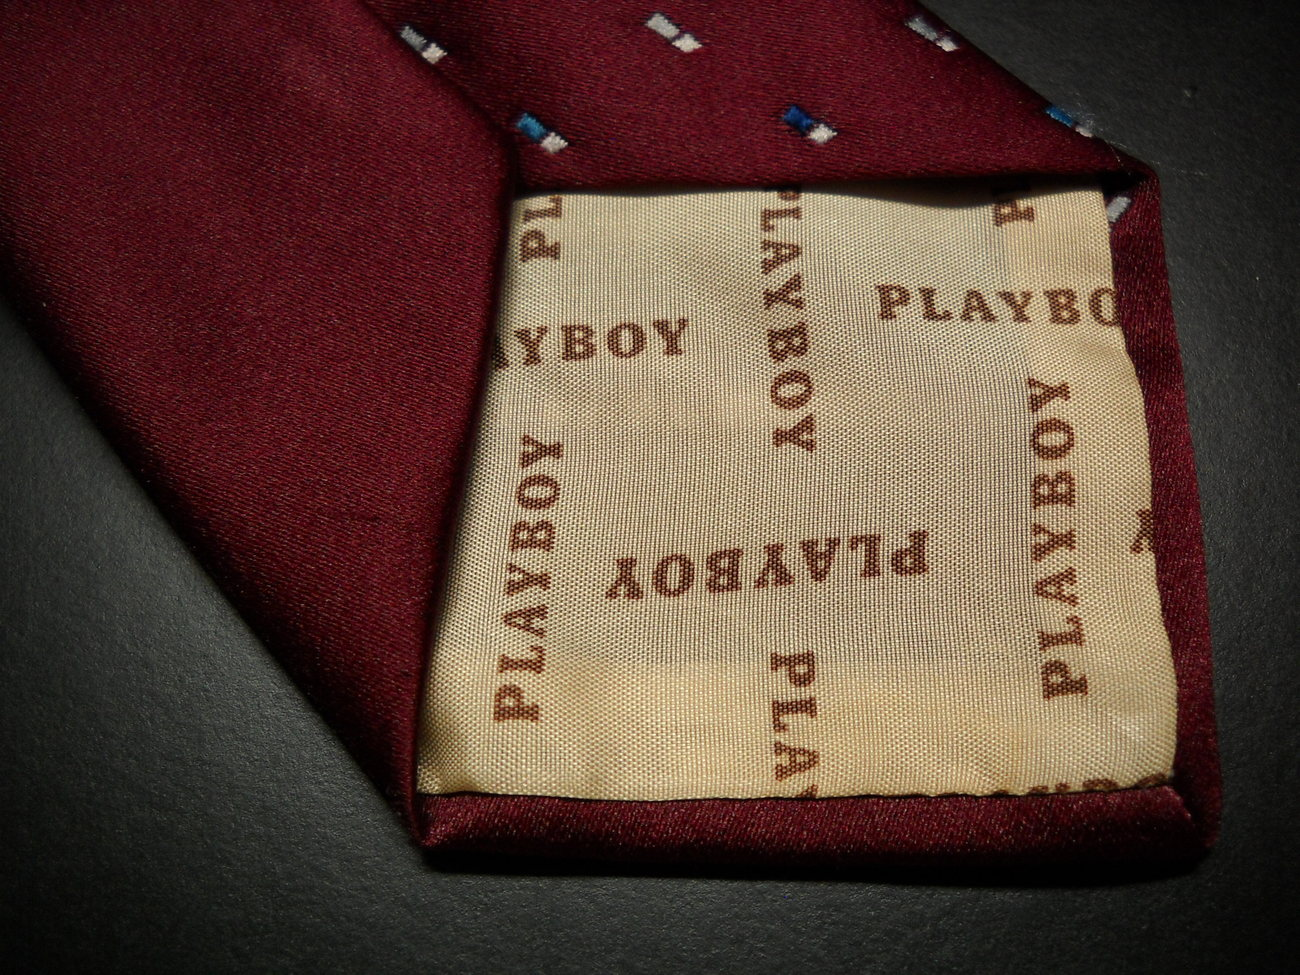 Playboy Neck Tie Bright Maroon Background with Blue Grey White Made in Italy